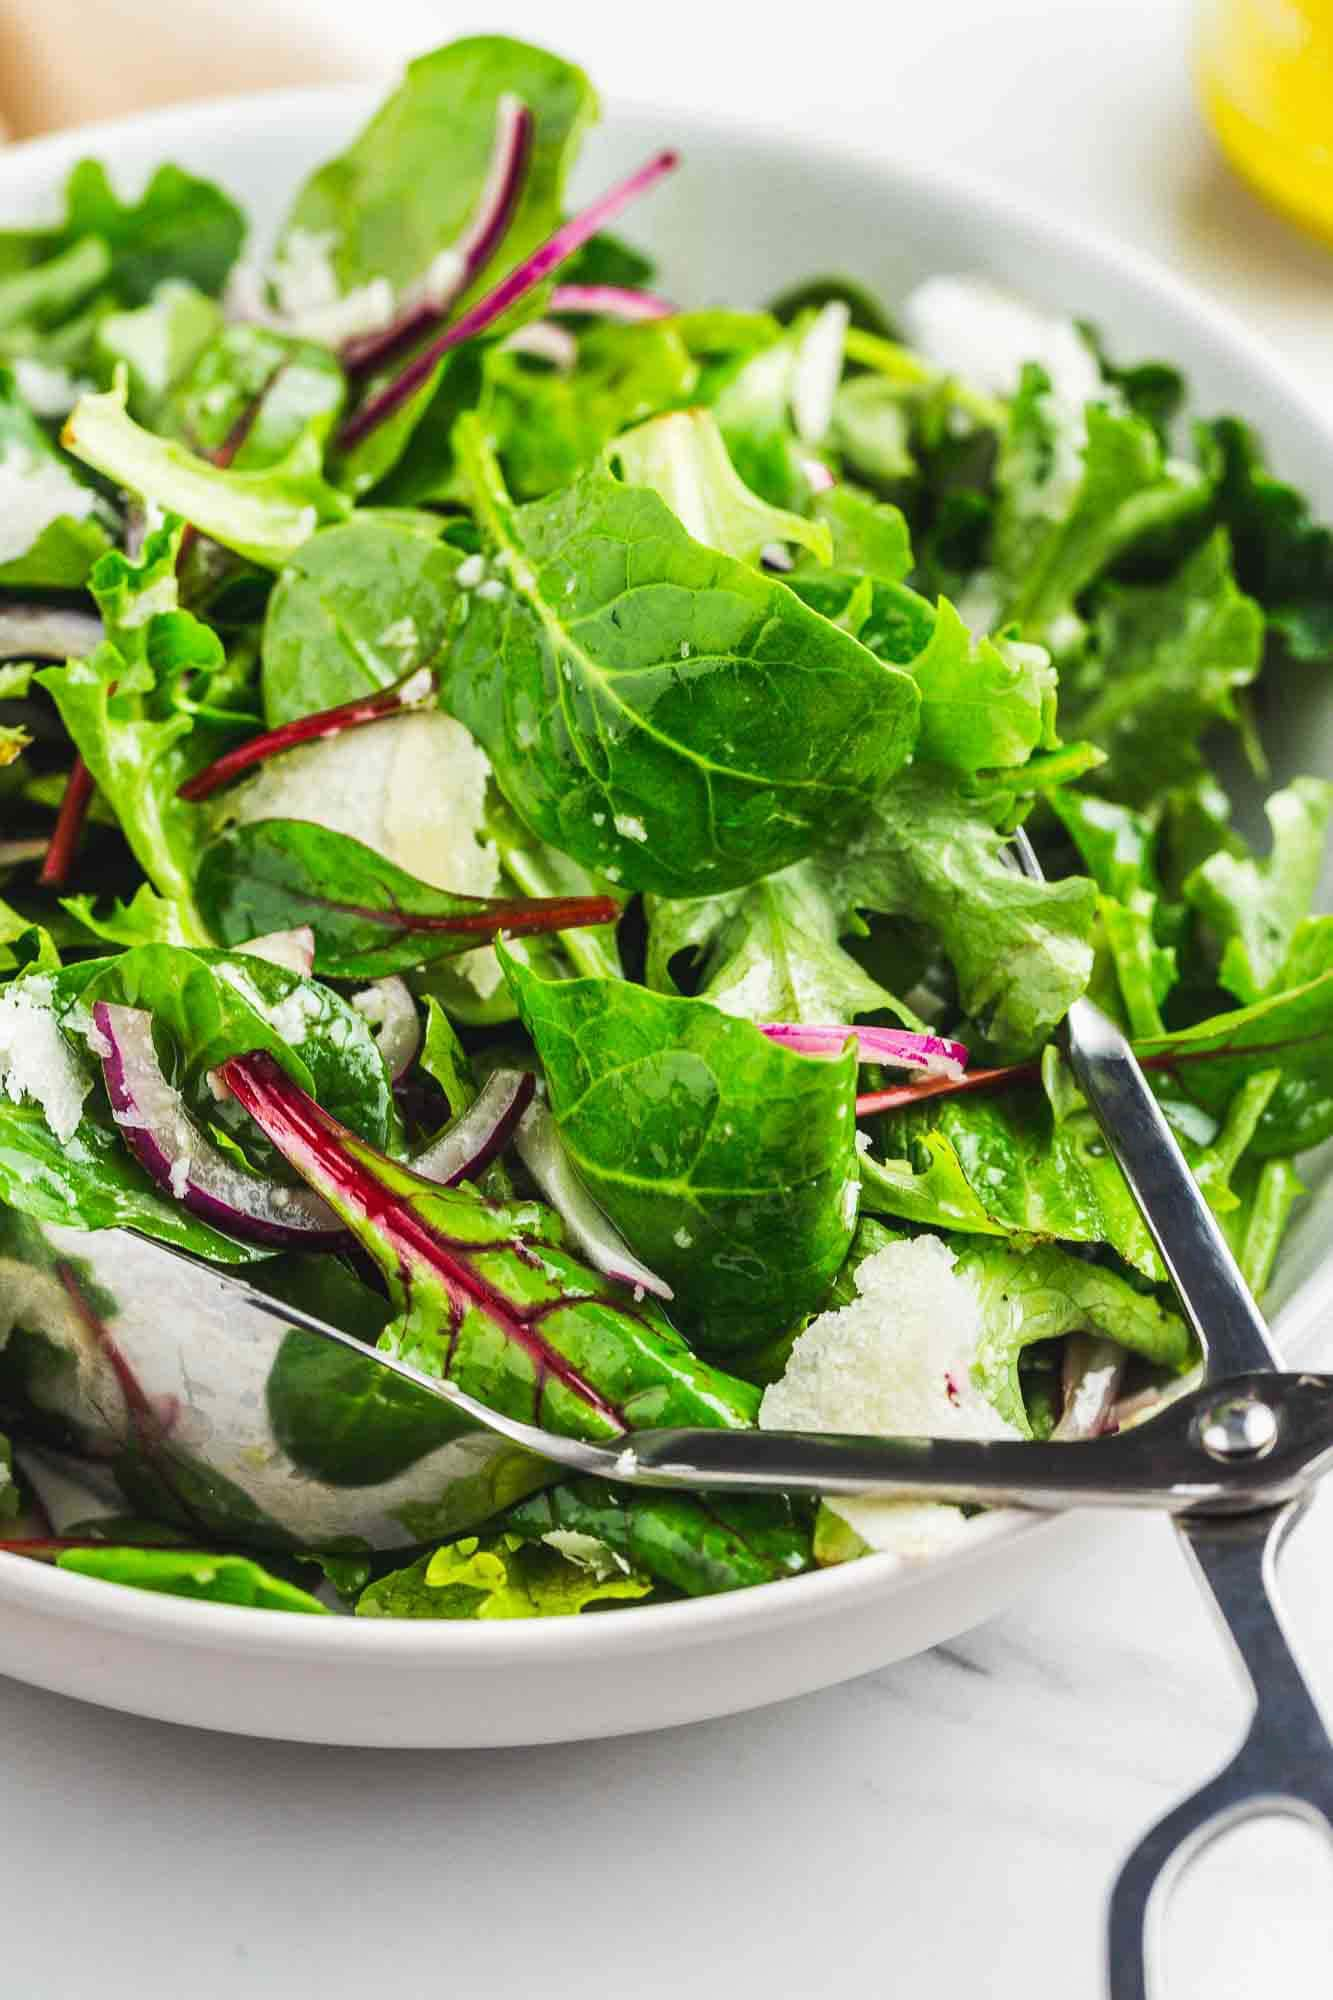 Tossed green salad with parmesan shavings, and a serving spoon